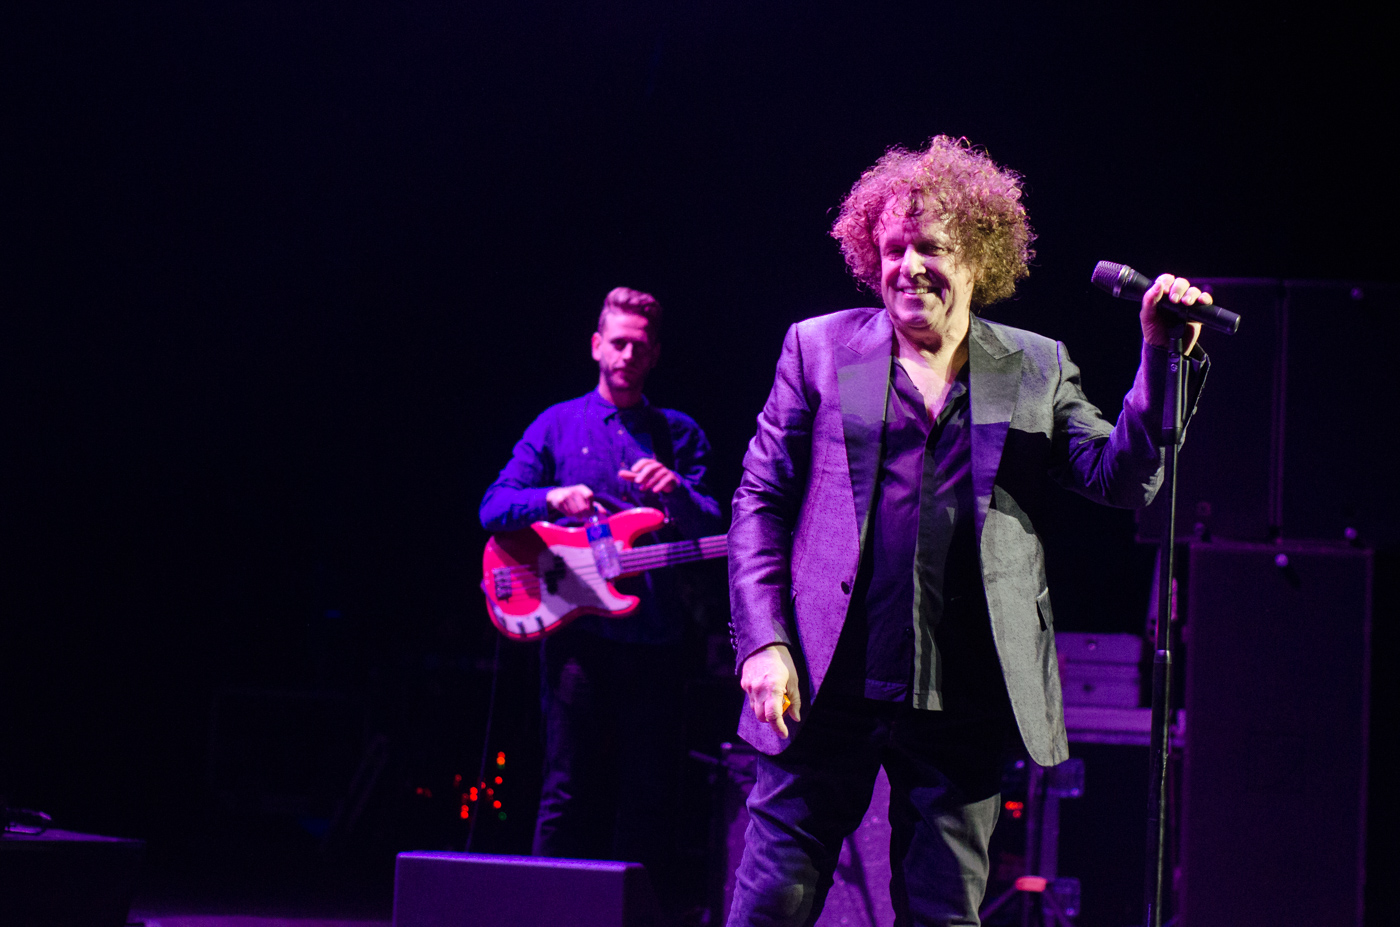 Leo Sayer at Bord Gais Energy Theatre by Sean Smyth (16-10-15) (110 of 129)